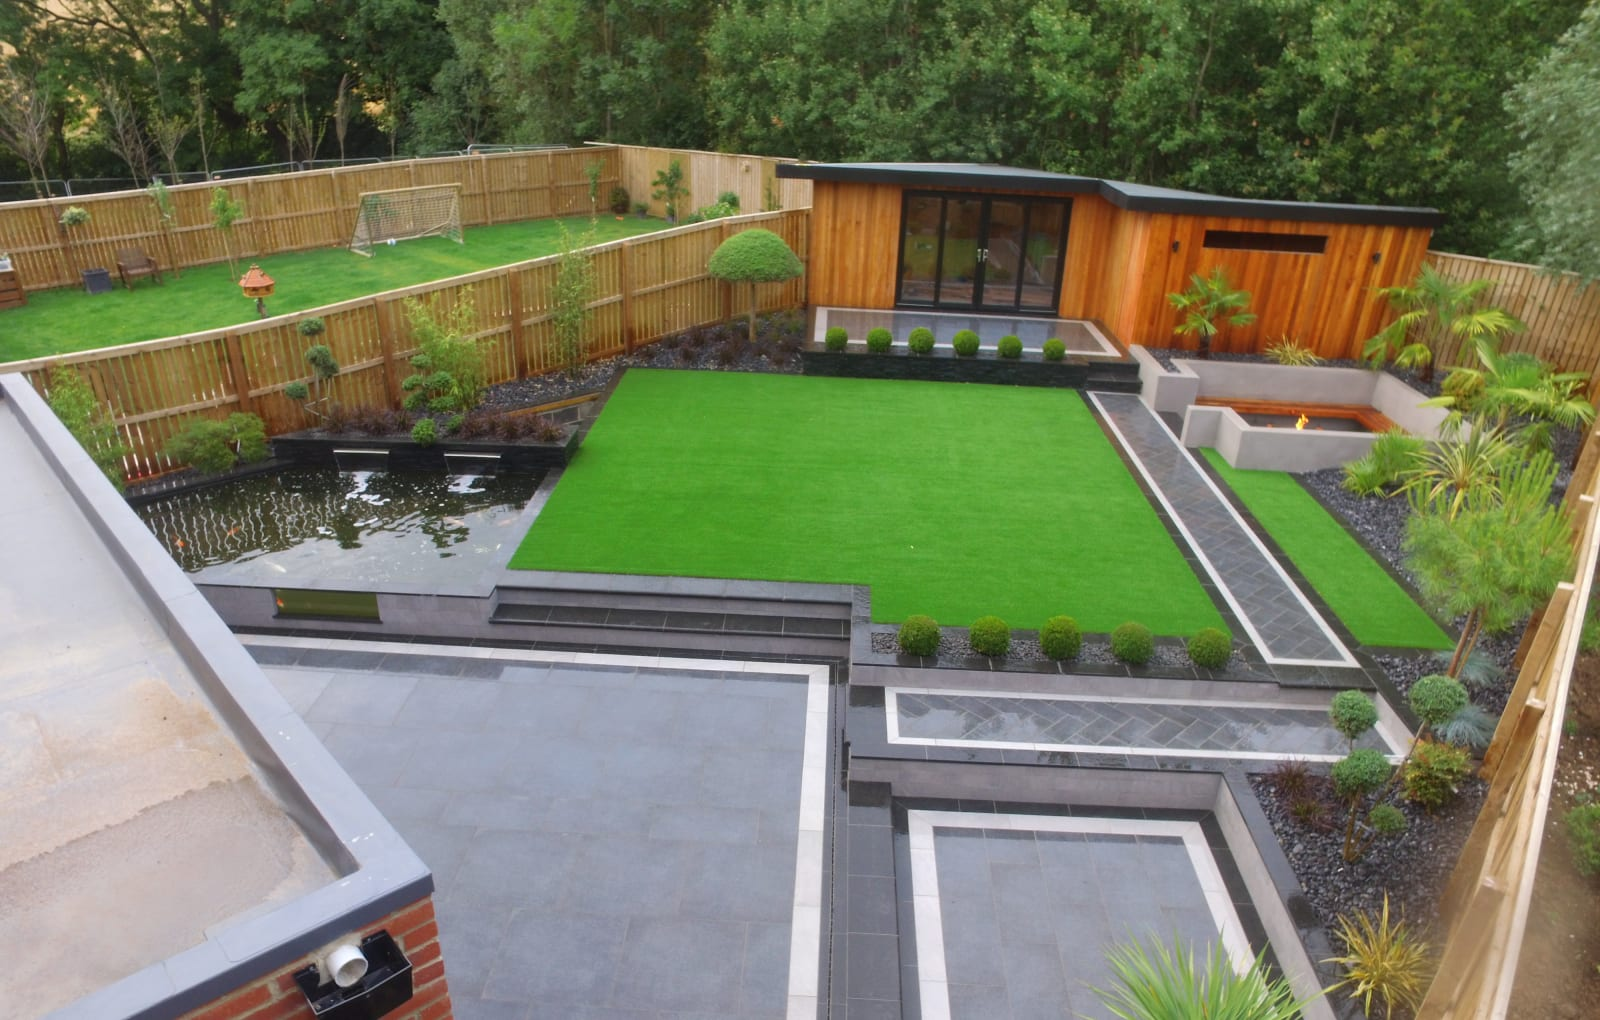 Symphony paving in Basalt with Granite Eclipse